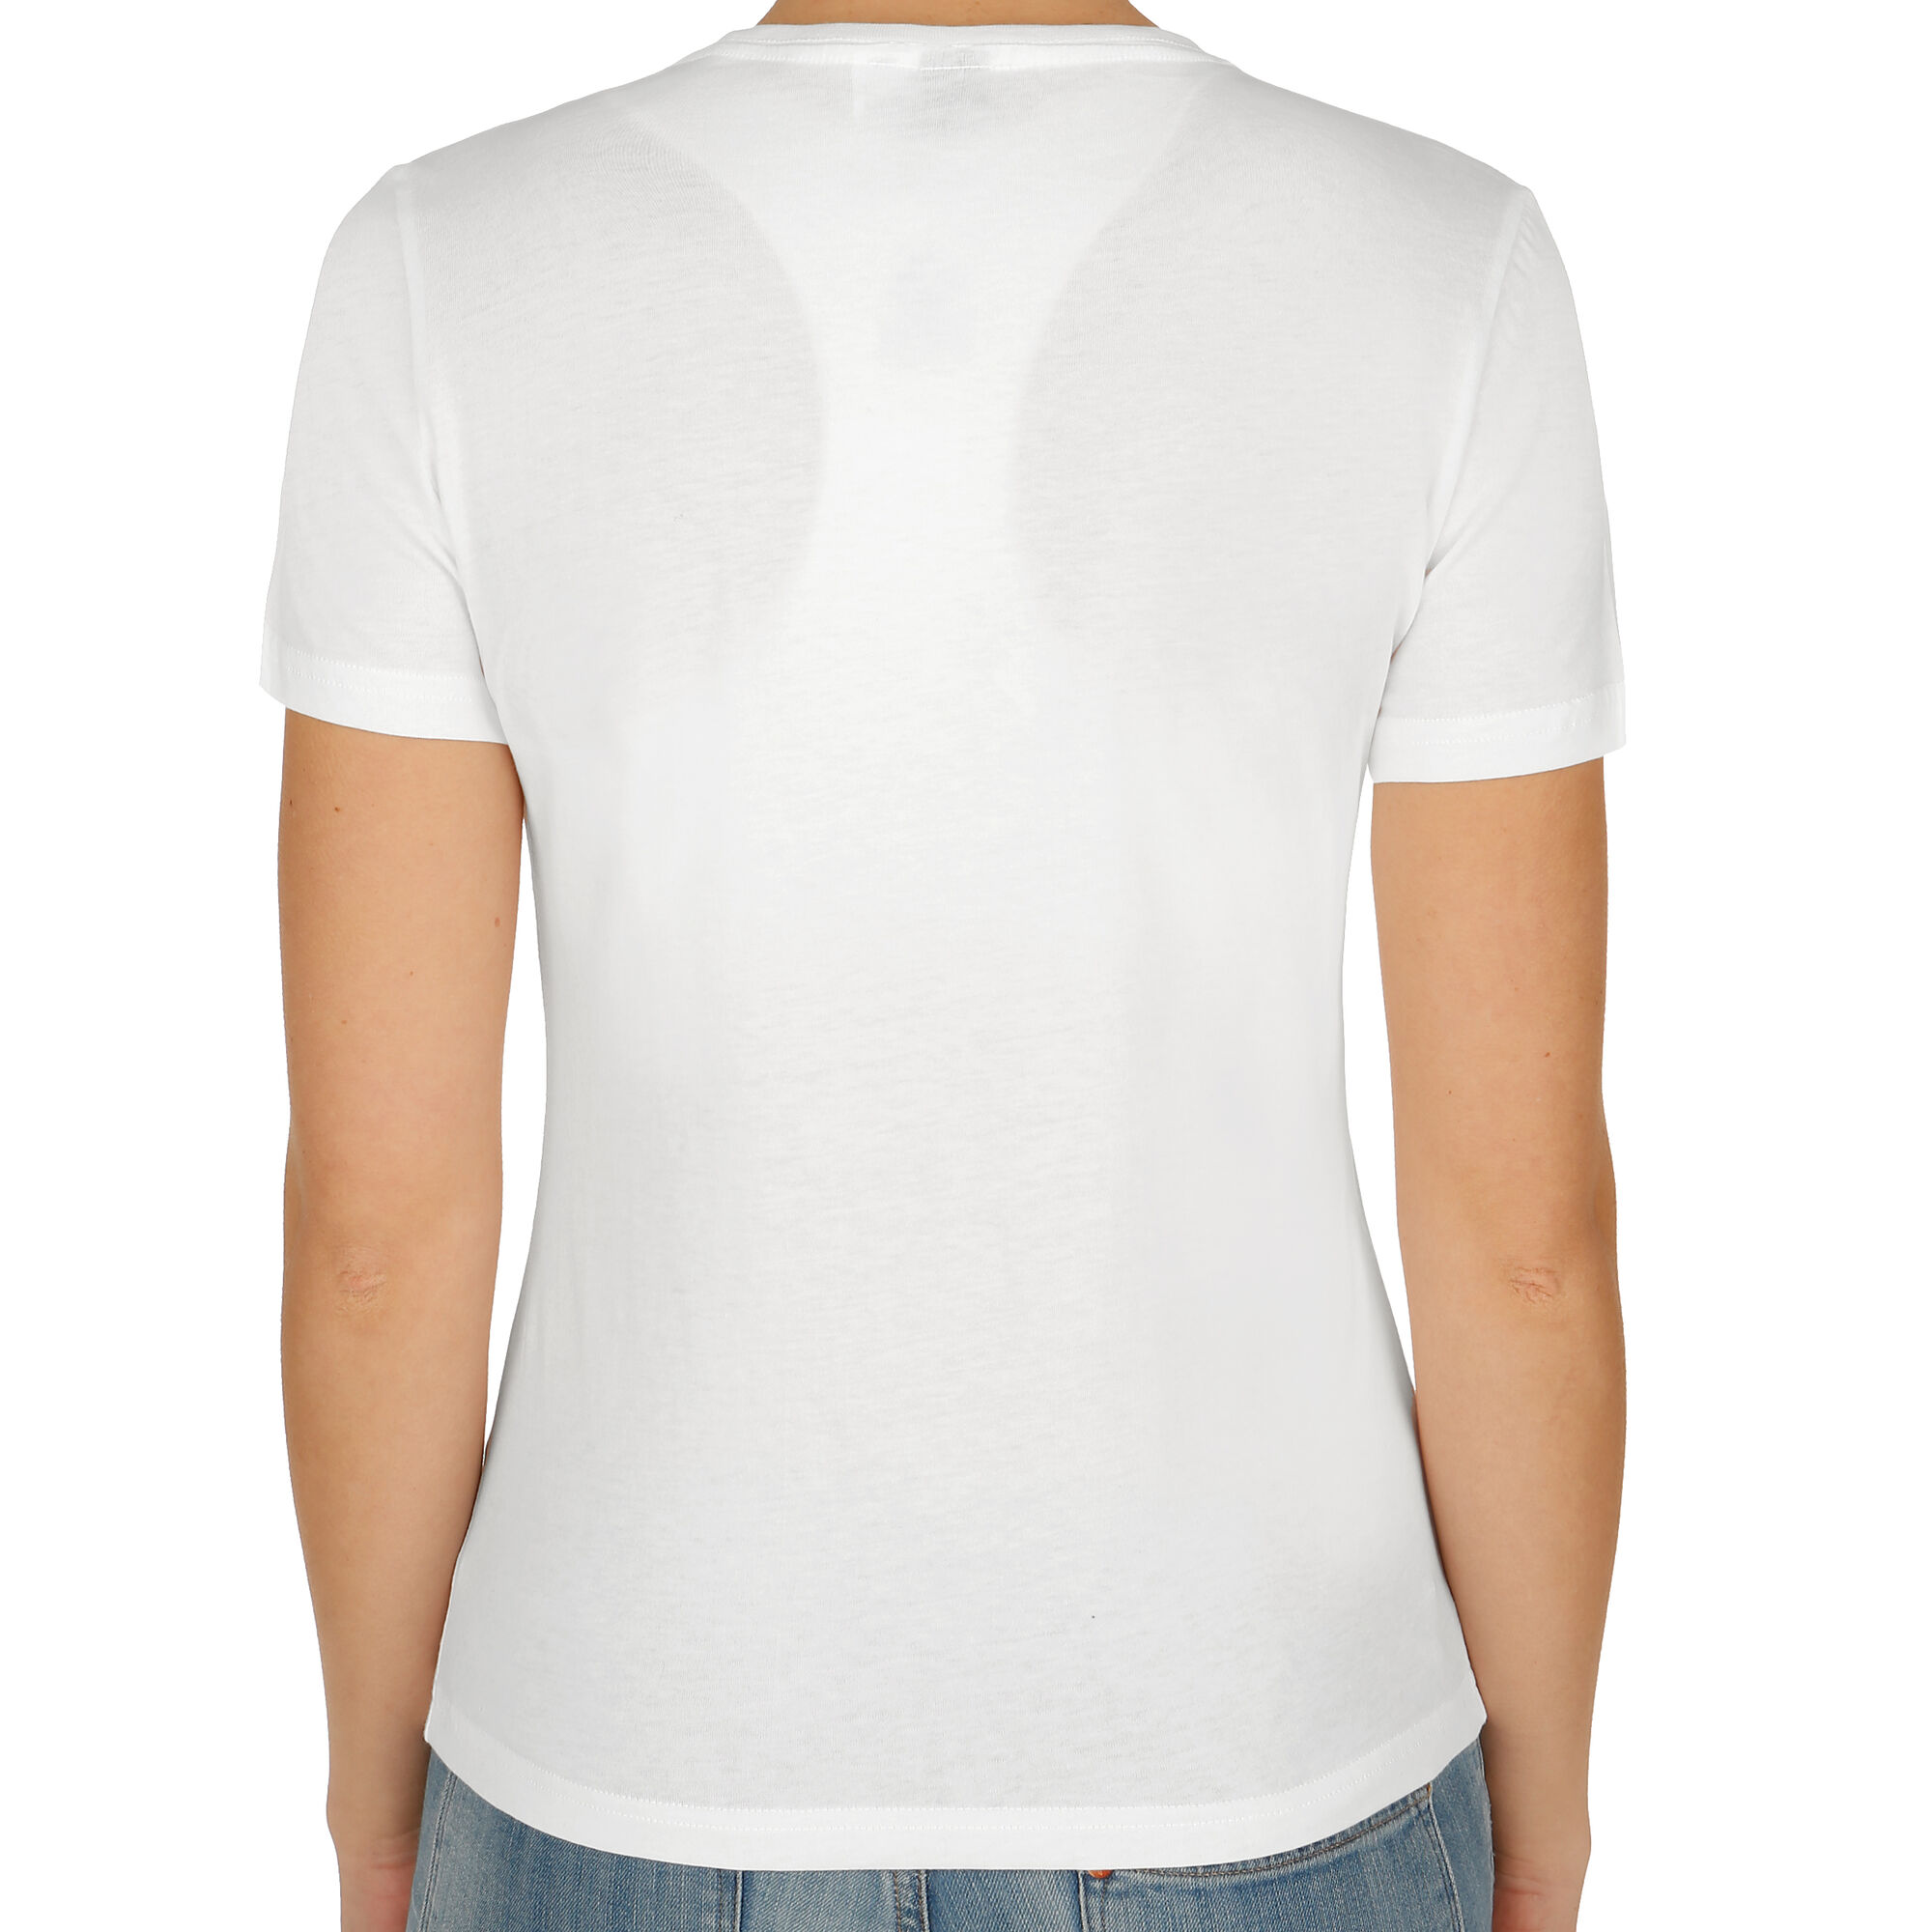 1a465d1c843 White Gold Adidas T Shirt – EDGE Engineering and Consulting Limited